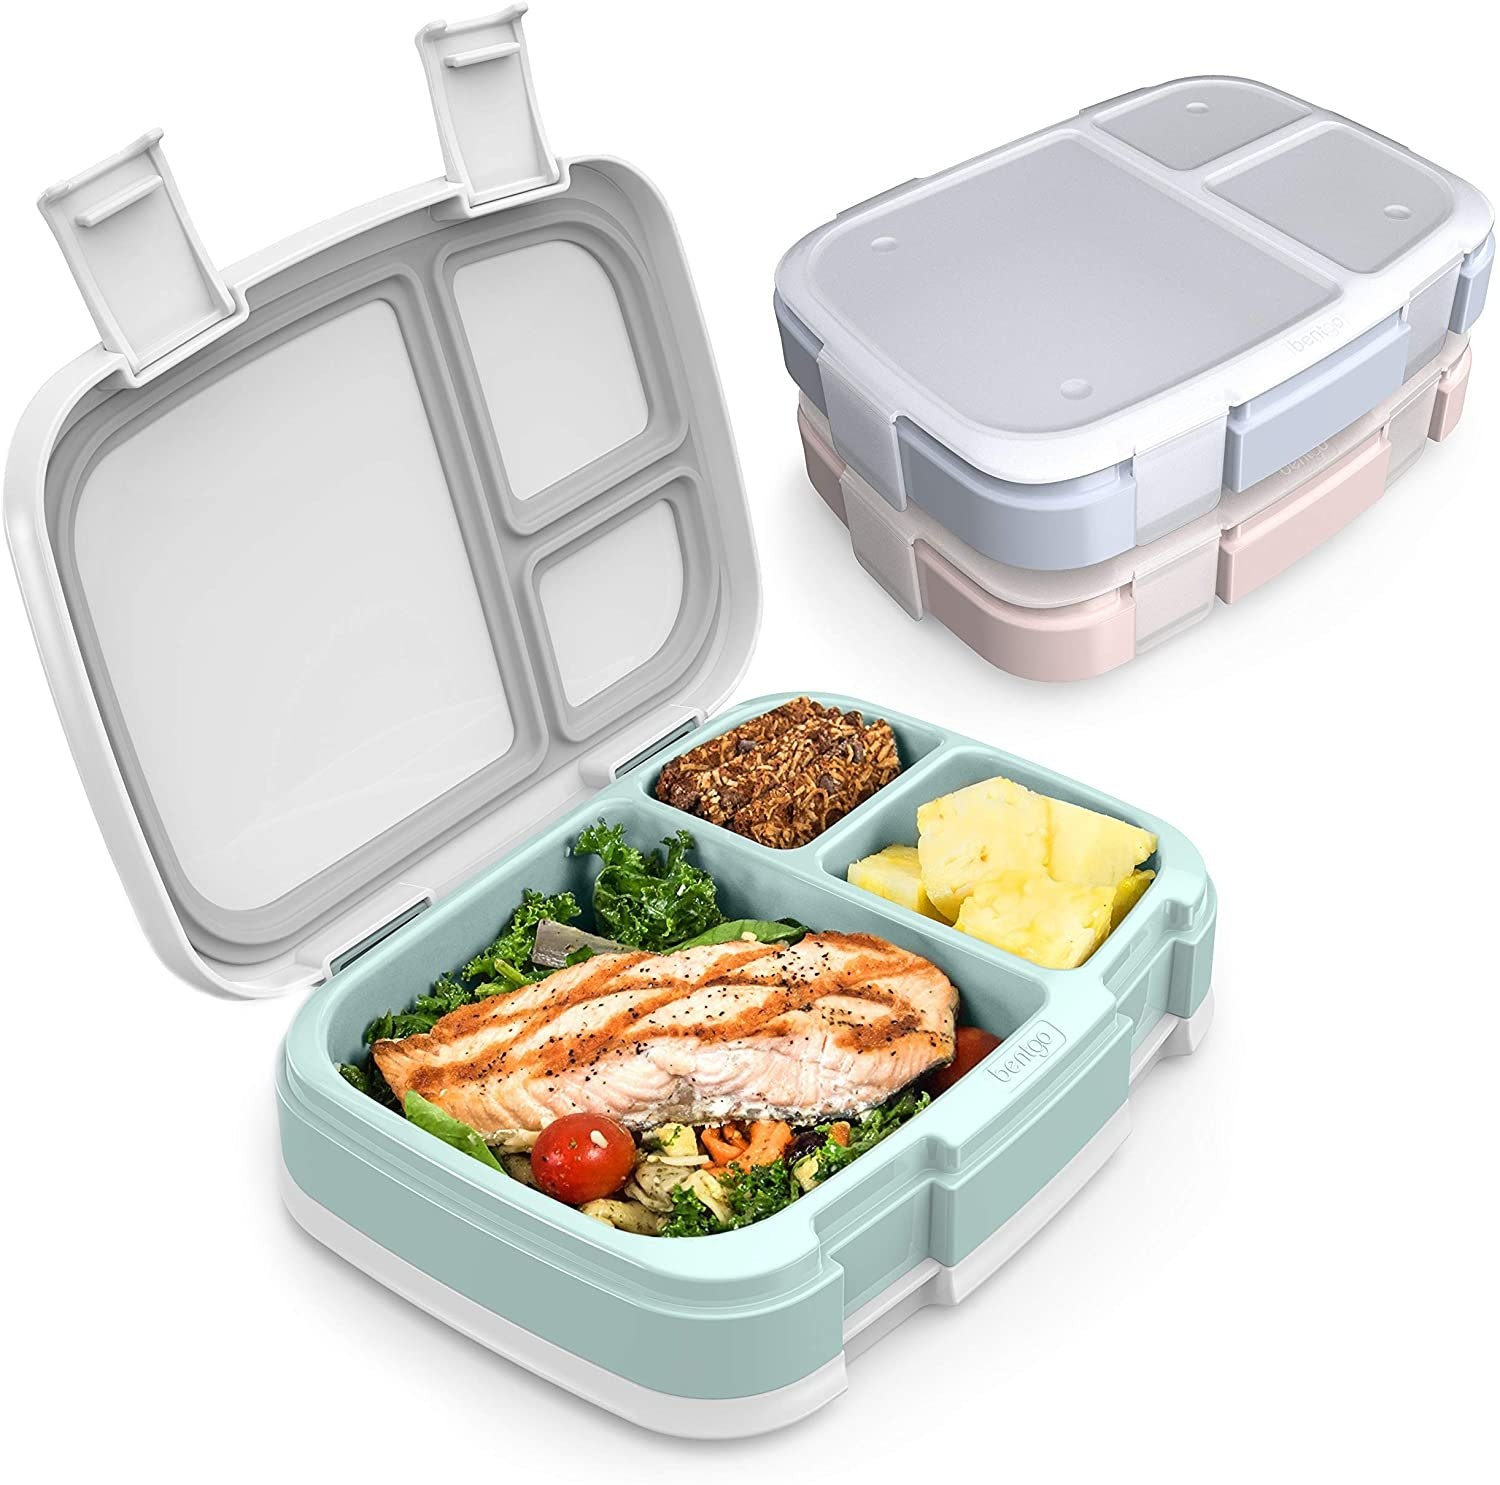 Bentgo Meal Prep Containers